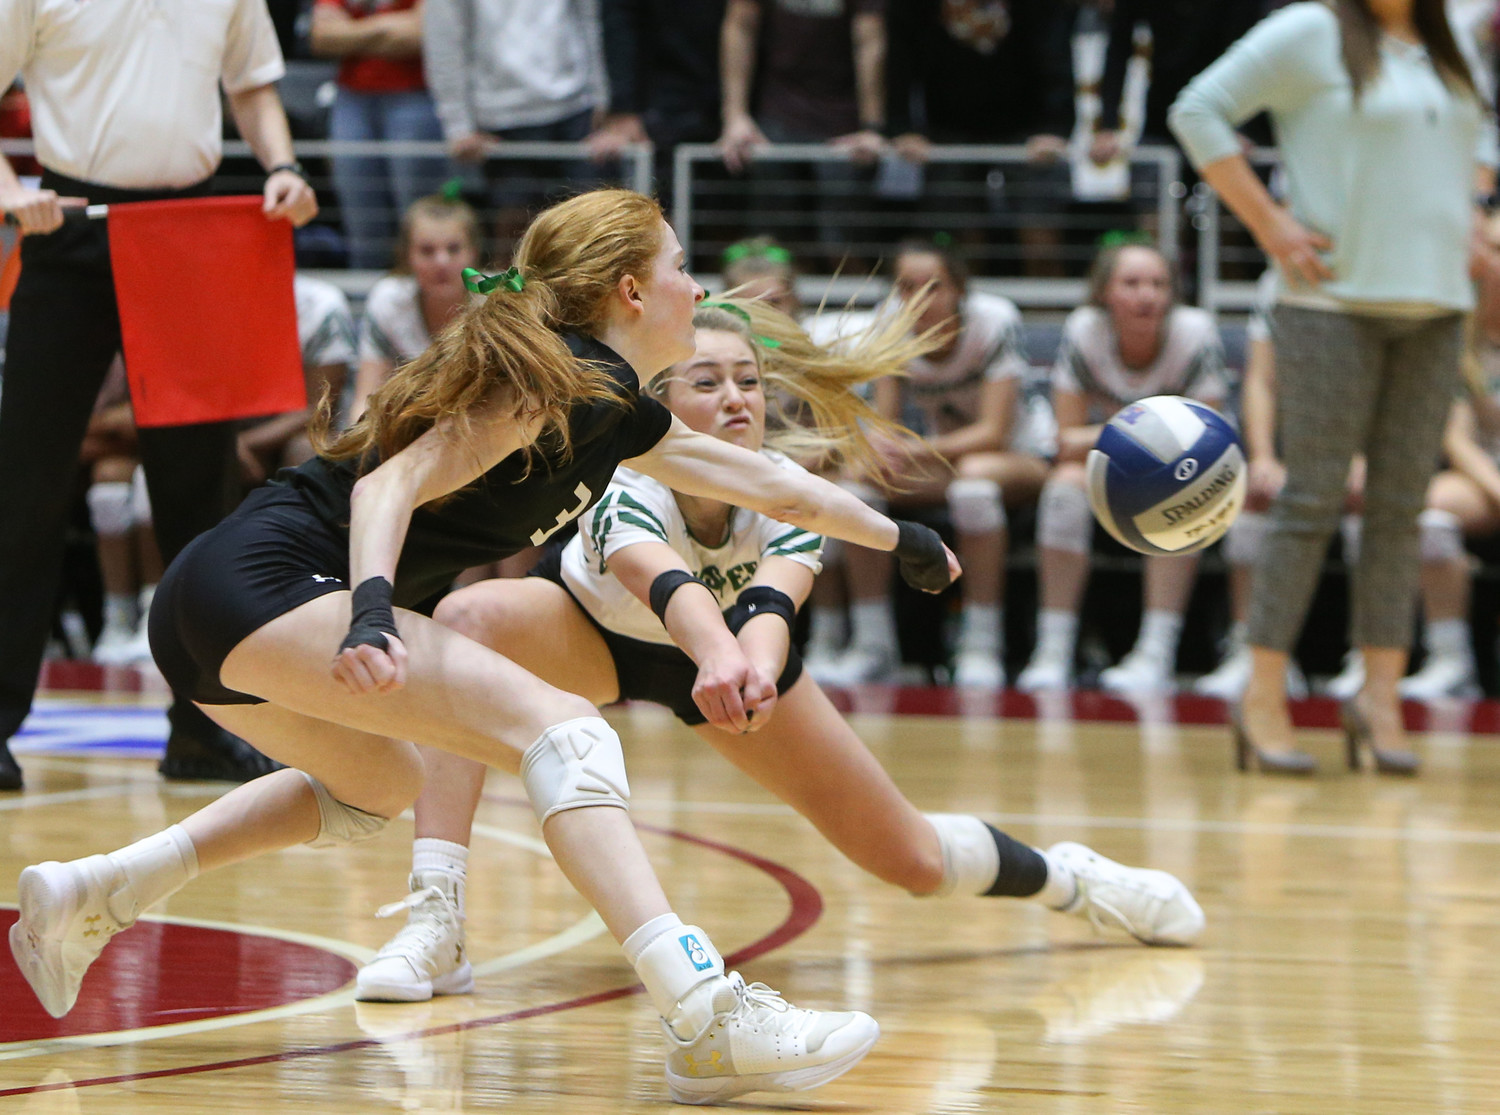 Prosper Eagles junior Kayla Martin (3) and junior Ciera Hecht (14) attempt to dig the ball during the Class 5A high school volleyball state final between Rouse High School and Prosper High School at Curtis Culwell Center in Garland, Texas, on November 18, 2017. Prosper won the match in five sets, (25-18, 21-25, 18-25, 25, 23, 16-14) to win the 5A state championship.